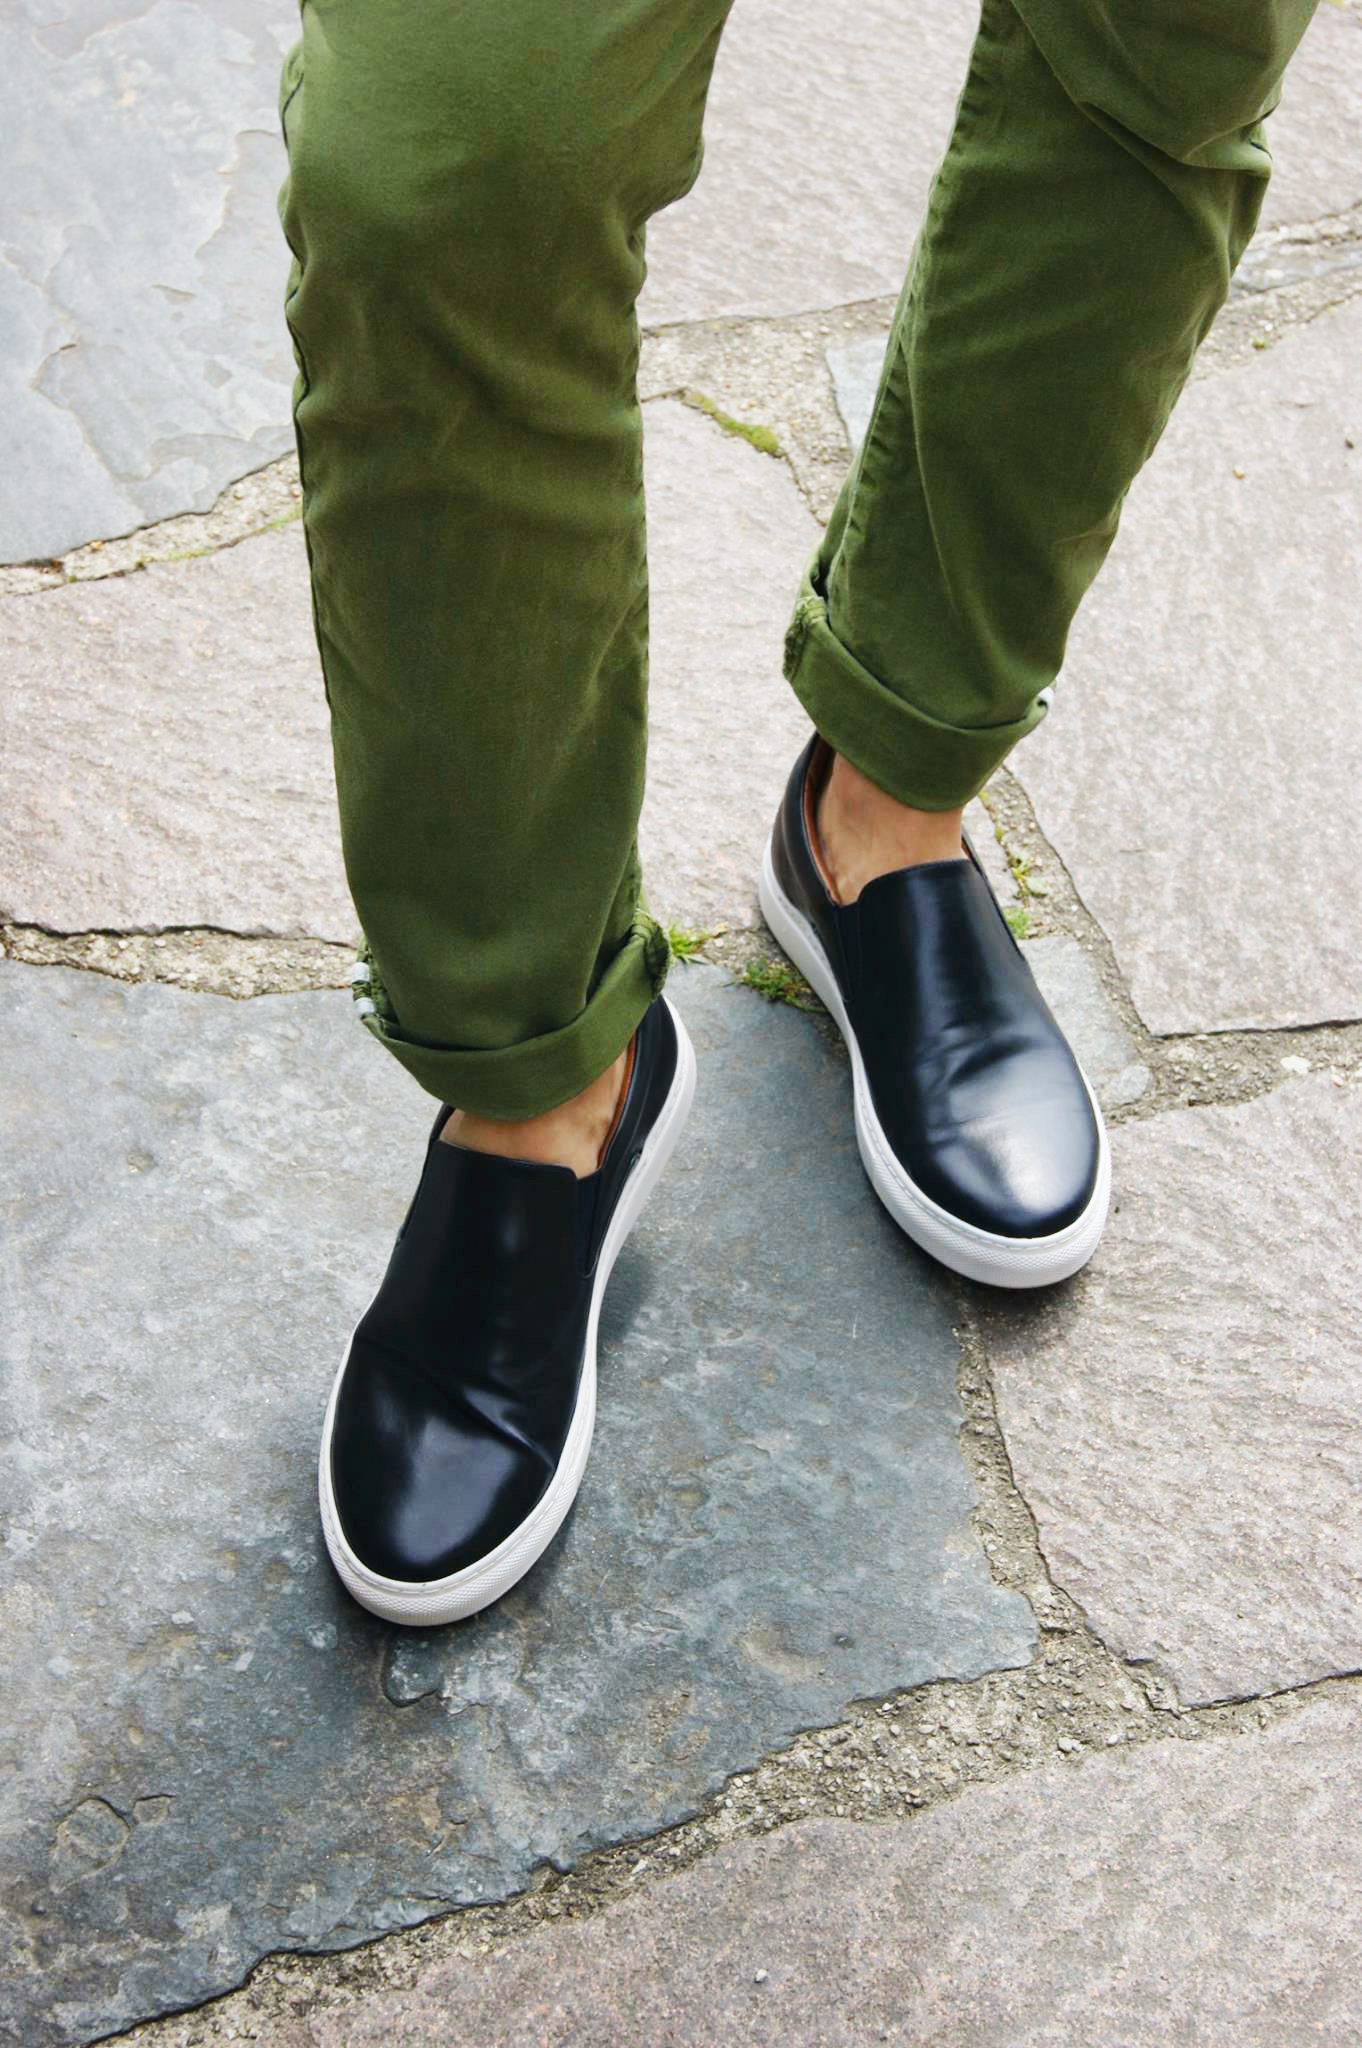 ivo saraf is showing his shoes and green pants